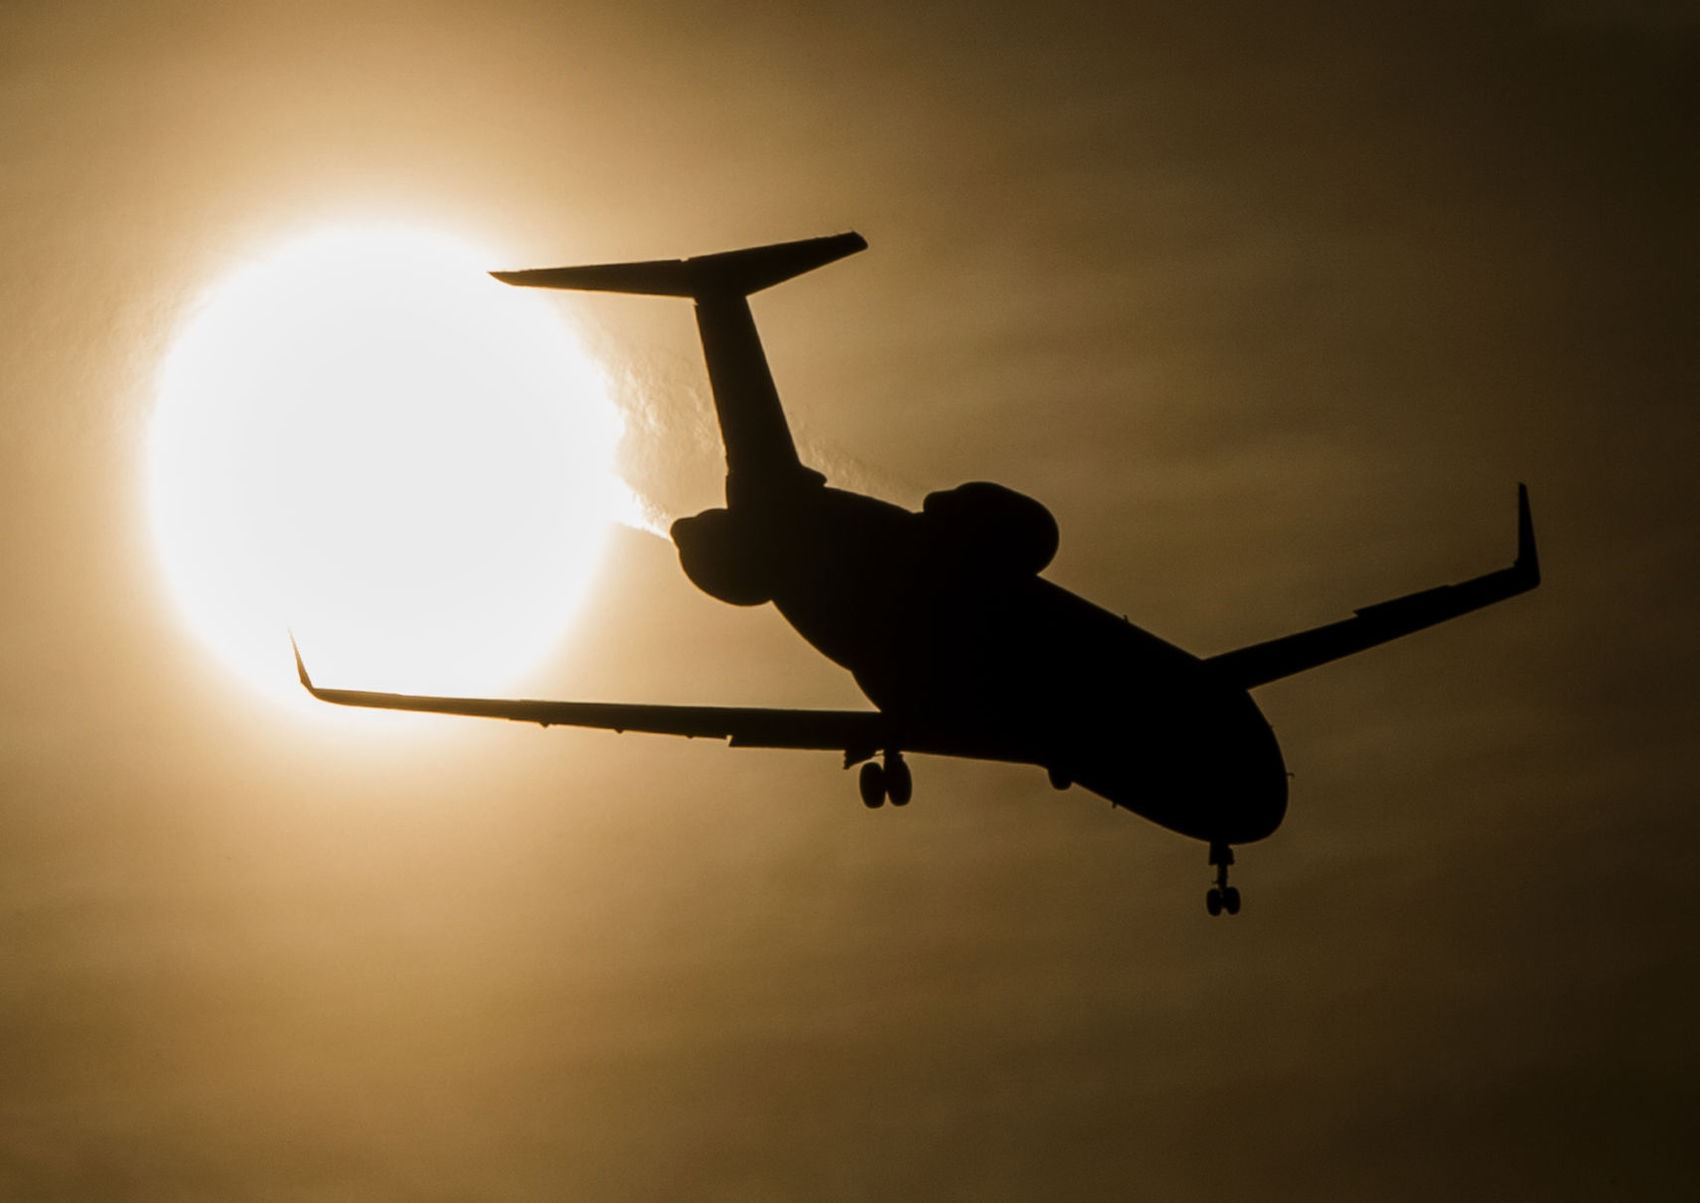 An airplane approaches South Bend International Airport as it prepares to land. Charlotte Douglas In